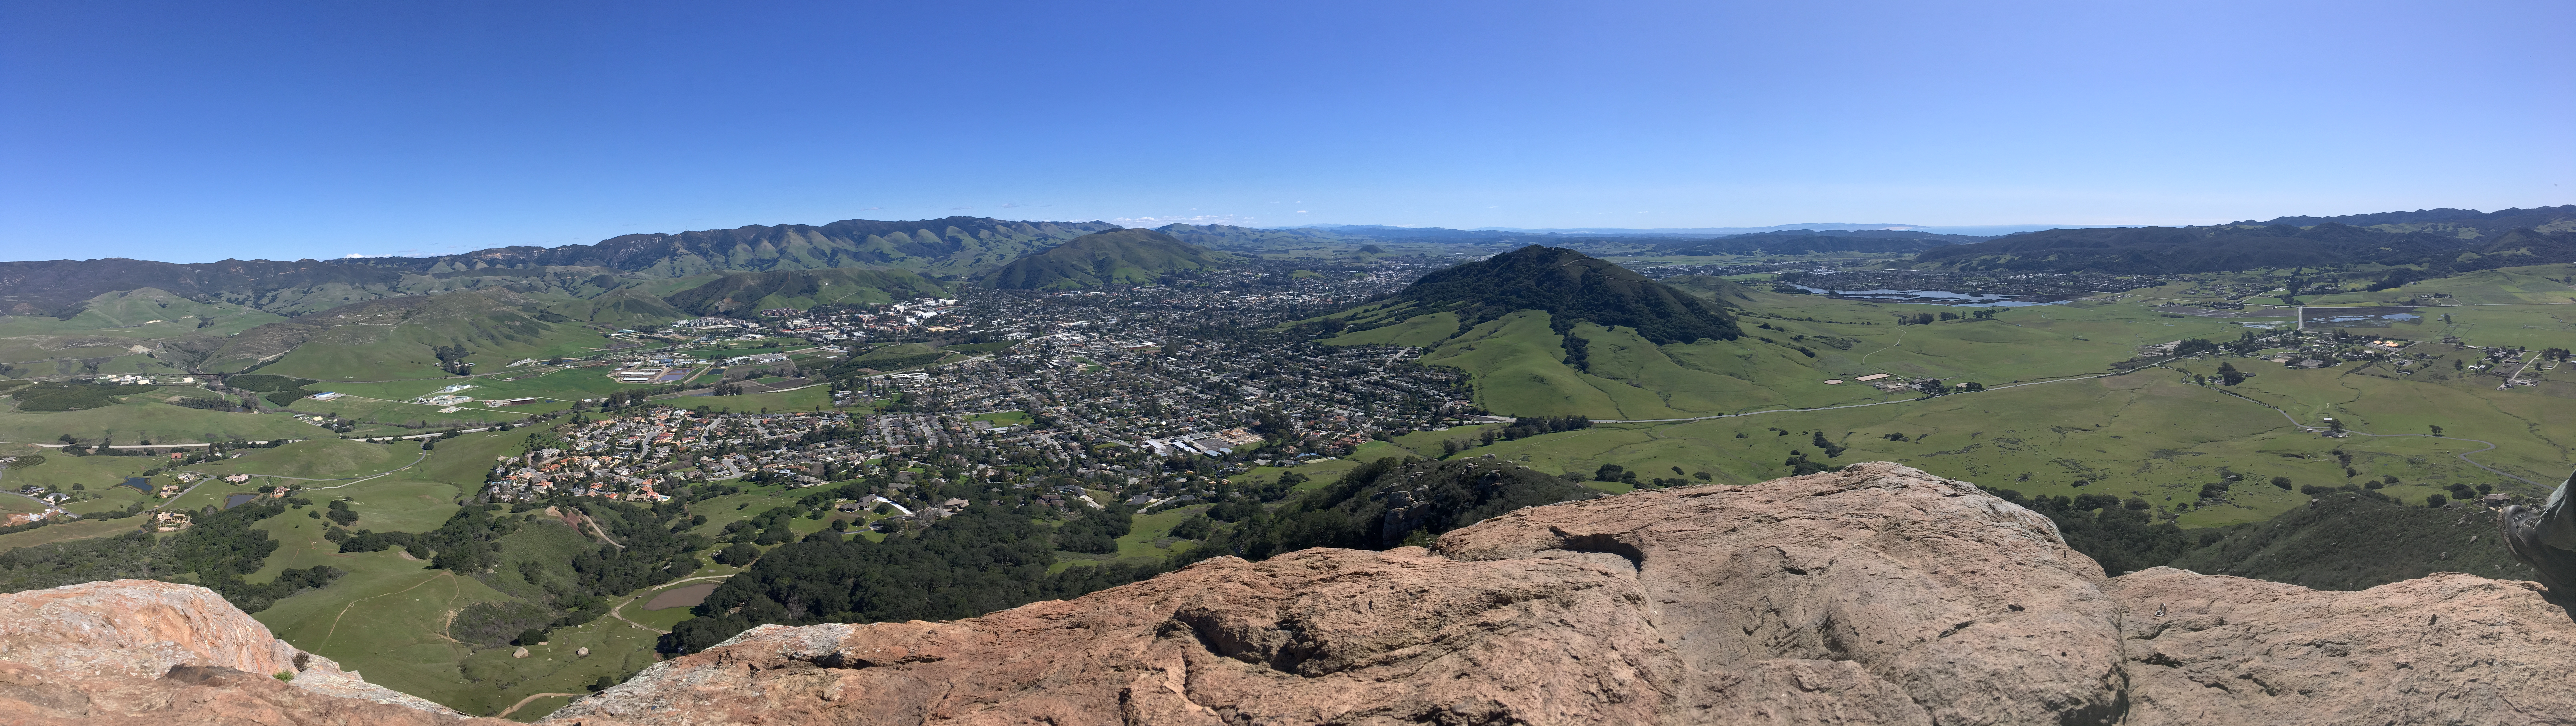 Fun things to do in SLO